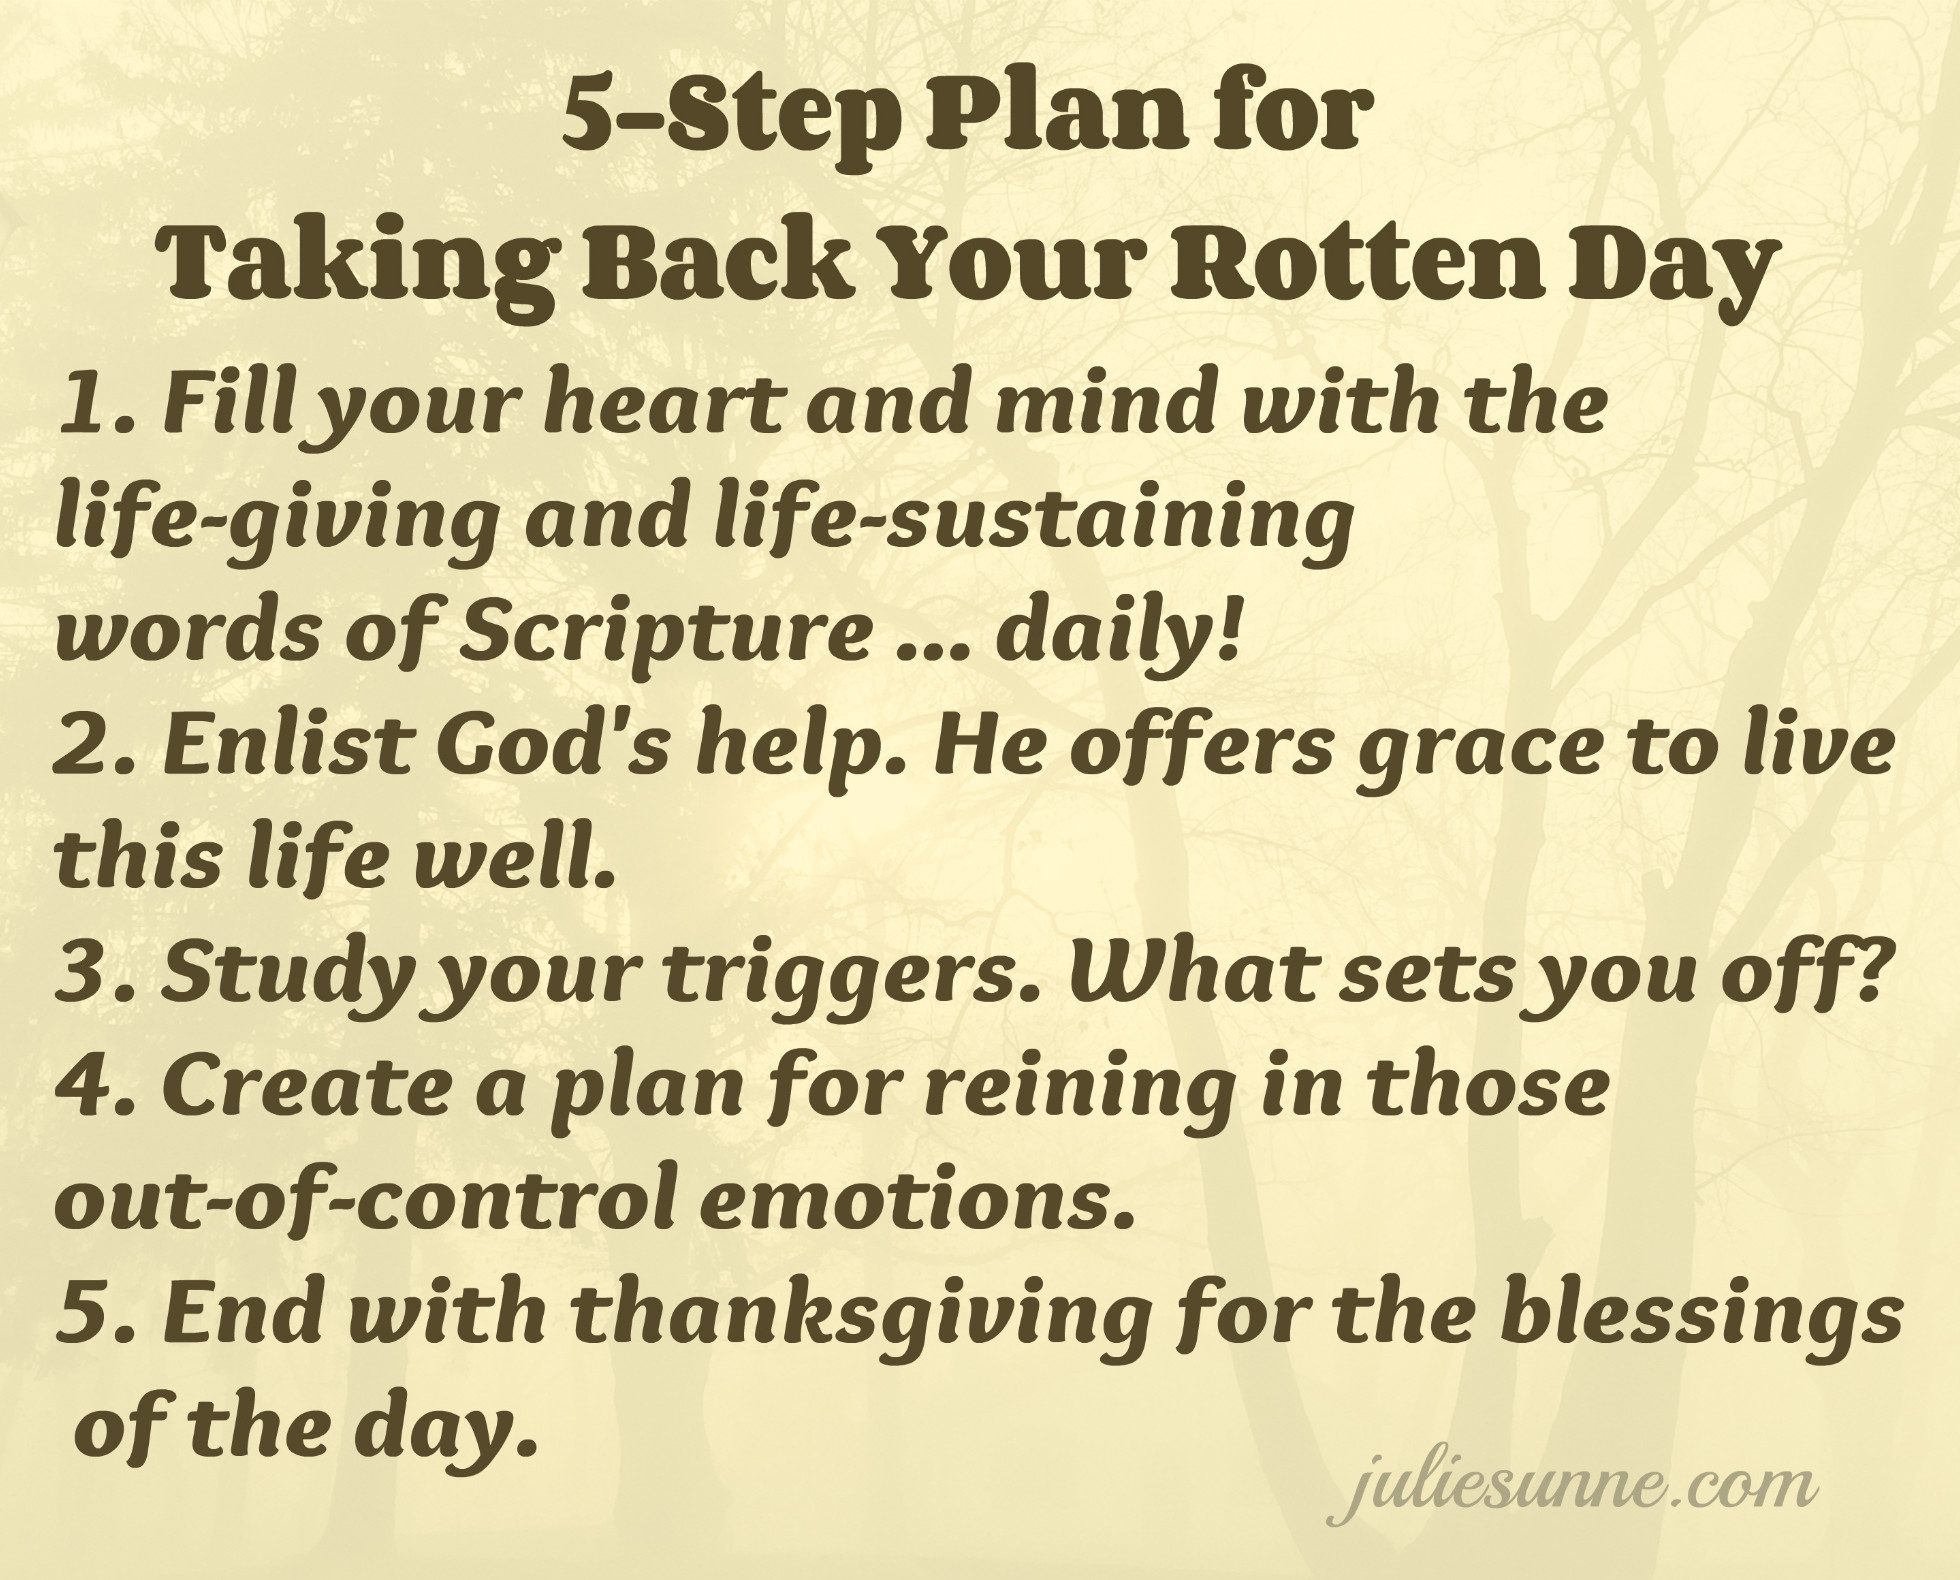 step plan for rotten day julie sunne 5 step plan for rotten day